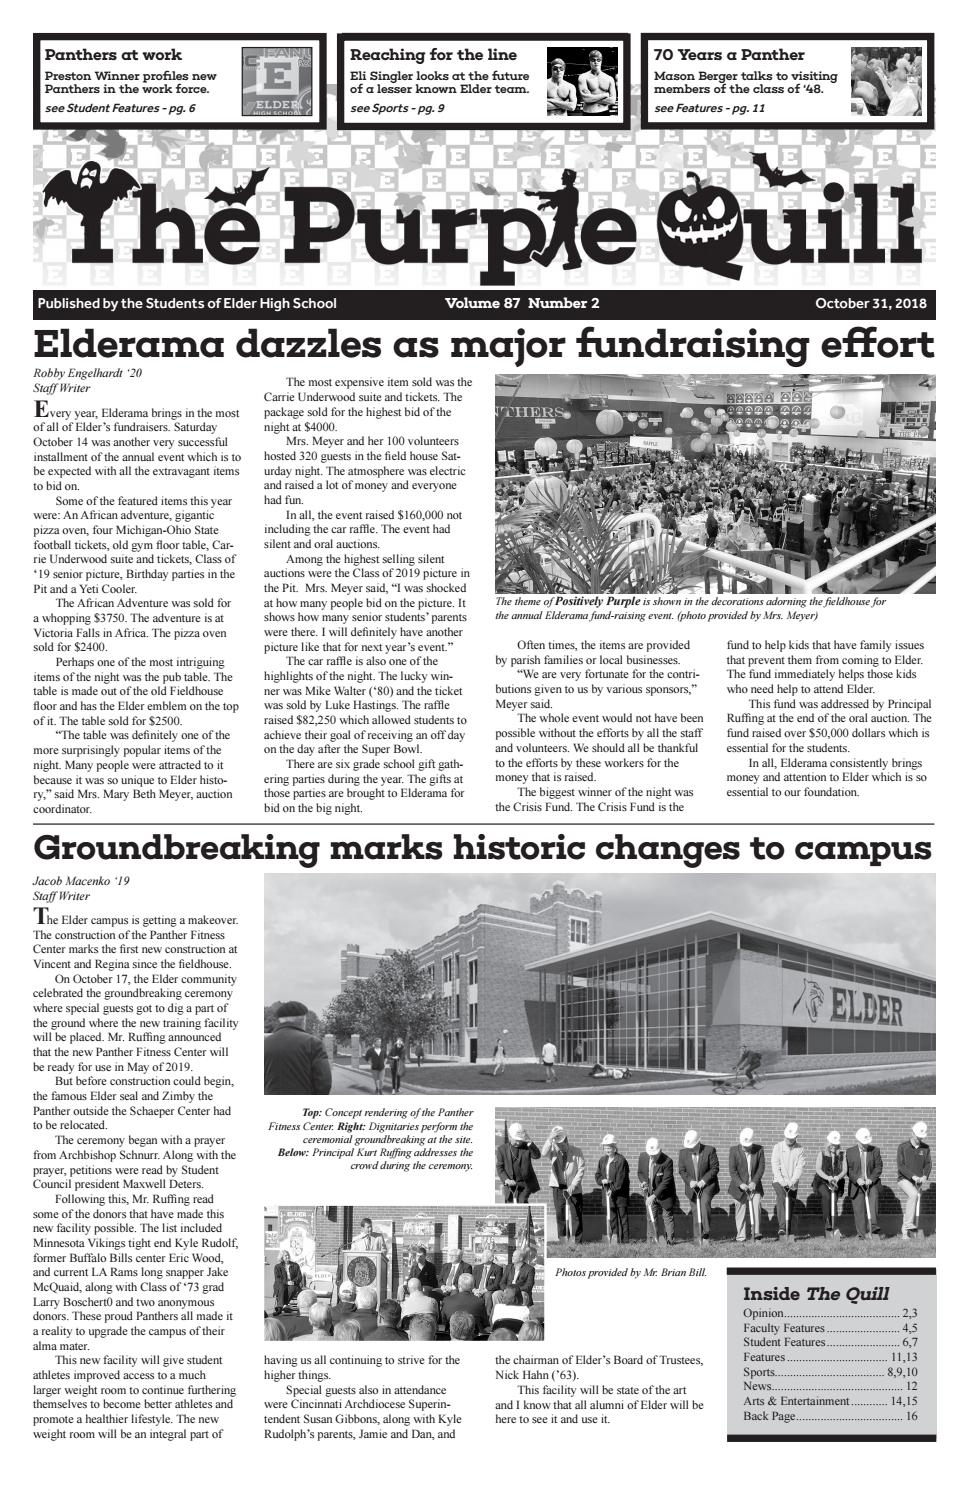 October 2018 issue of The Purple Quill by Elder High School